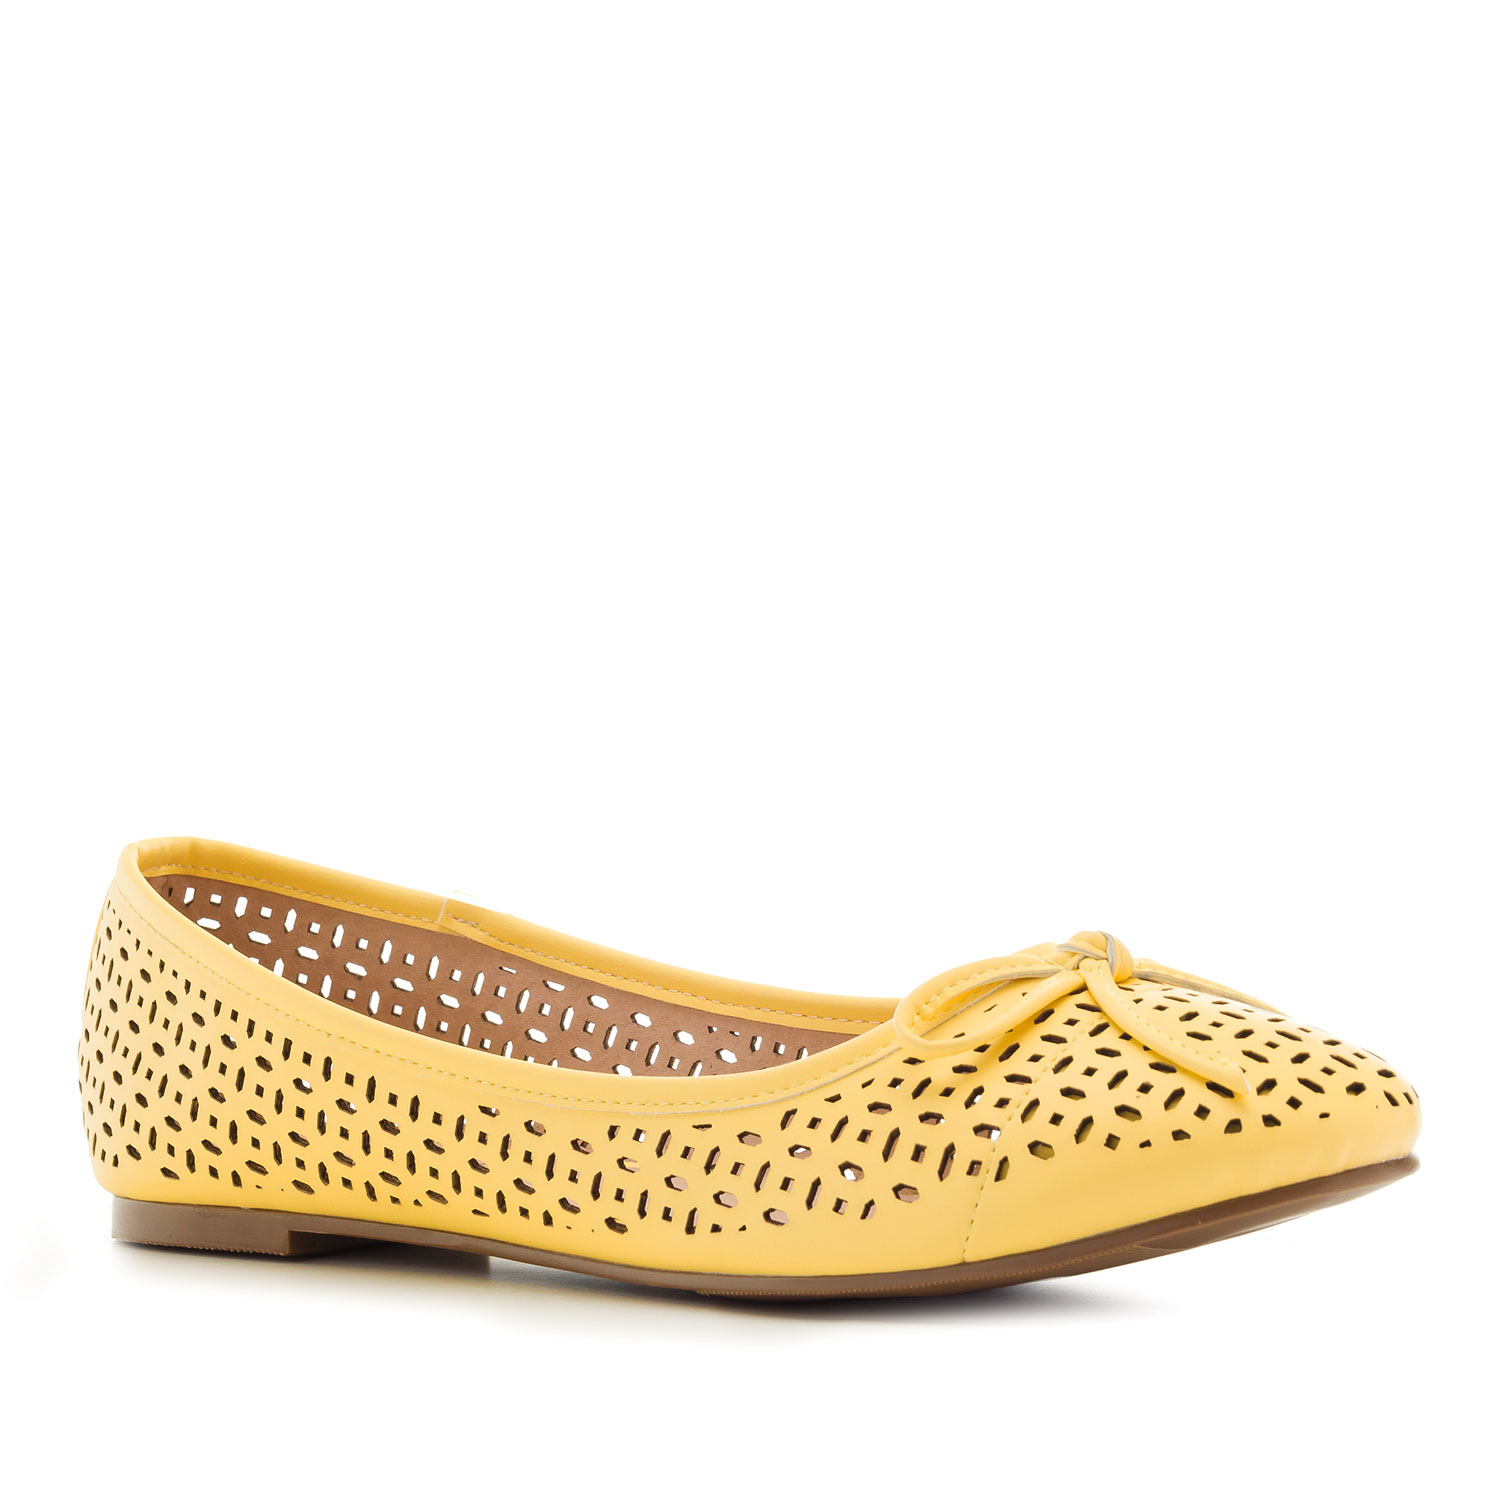 Die-cut Ballet Flats in Yellow faux Leather